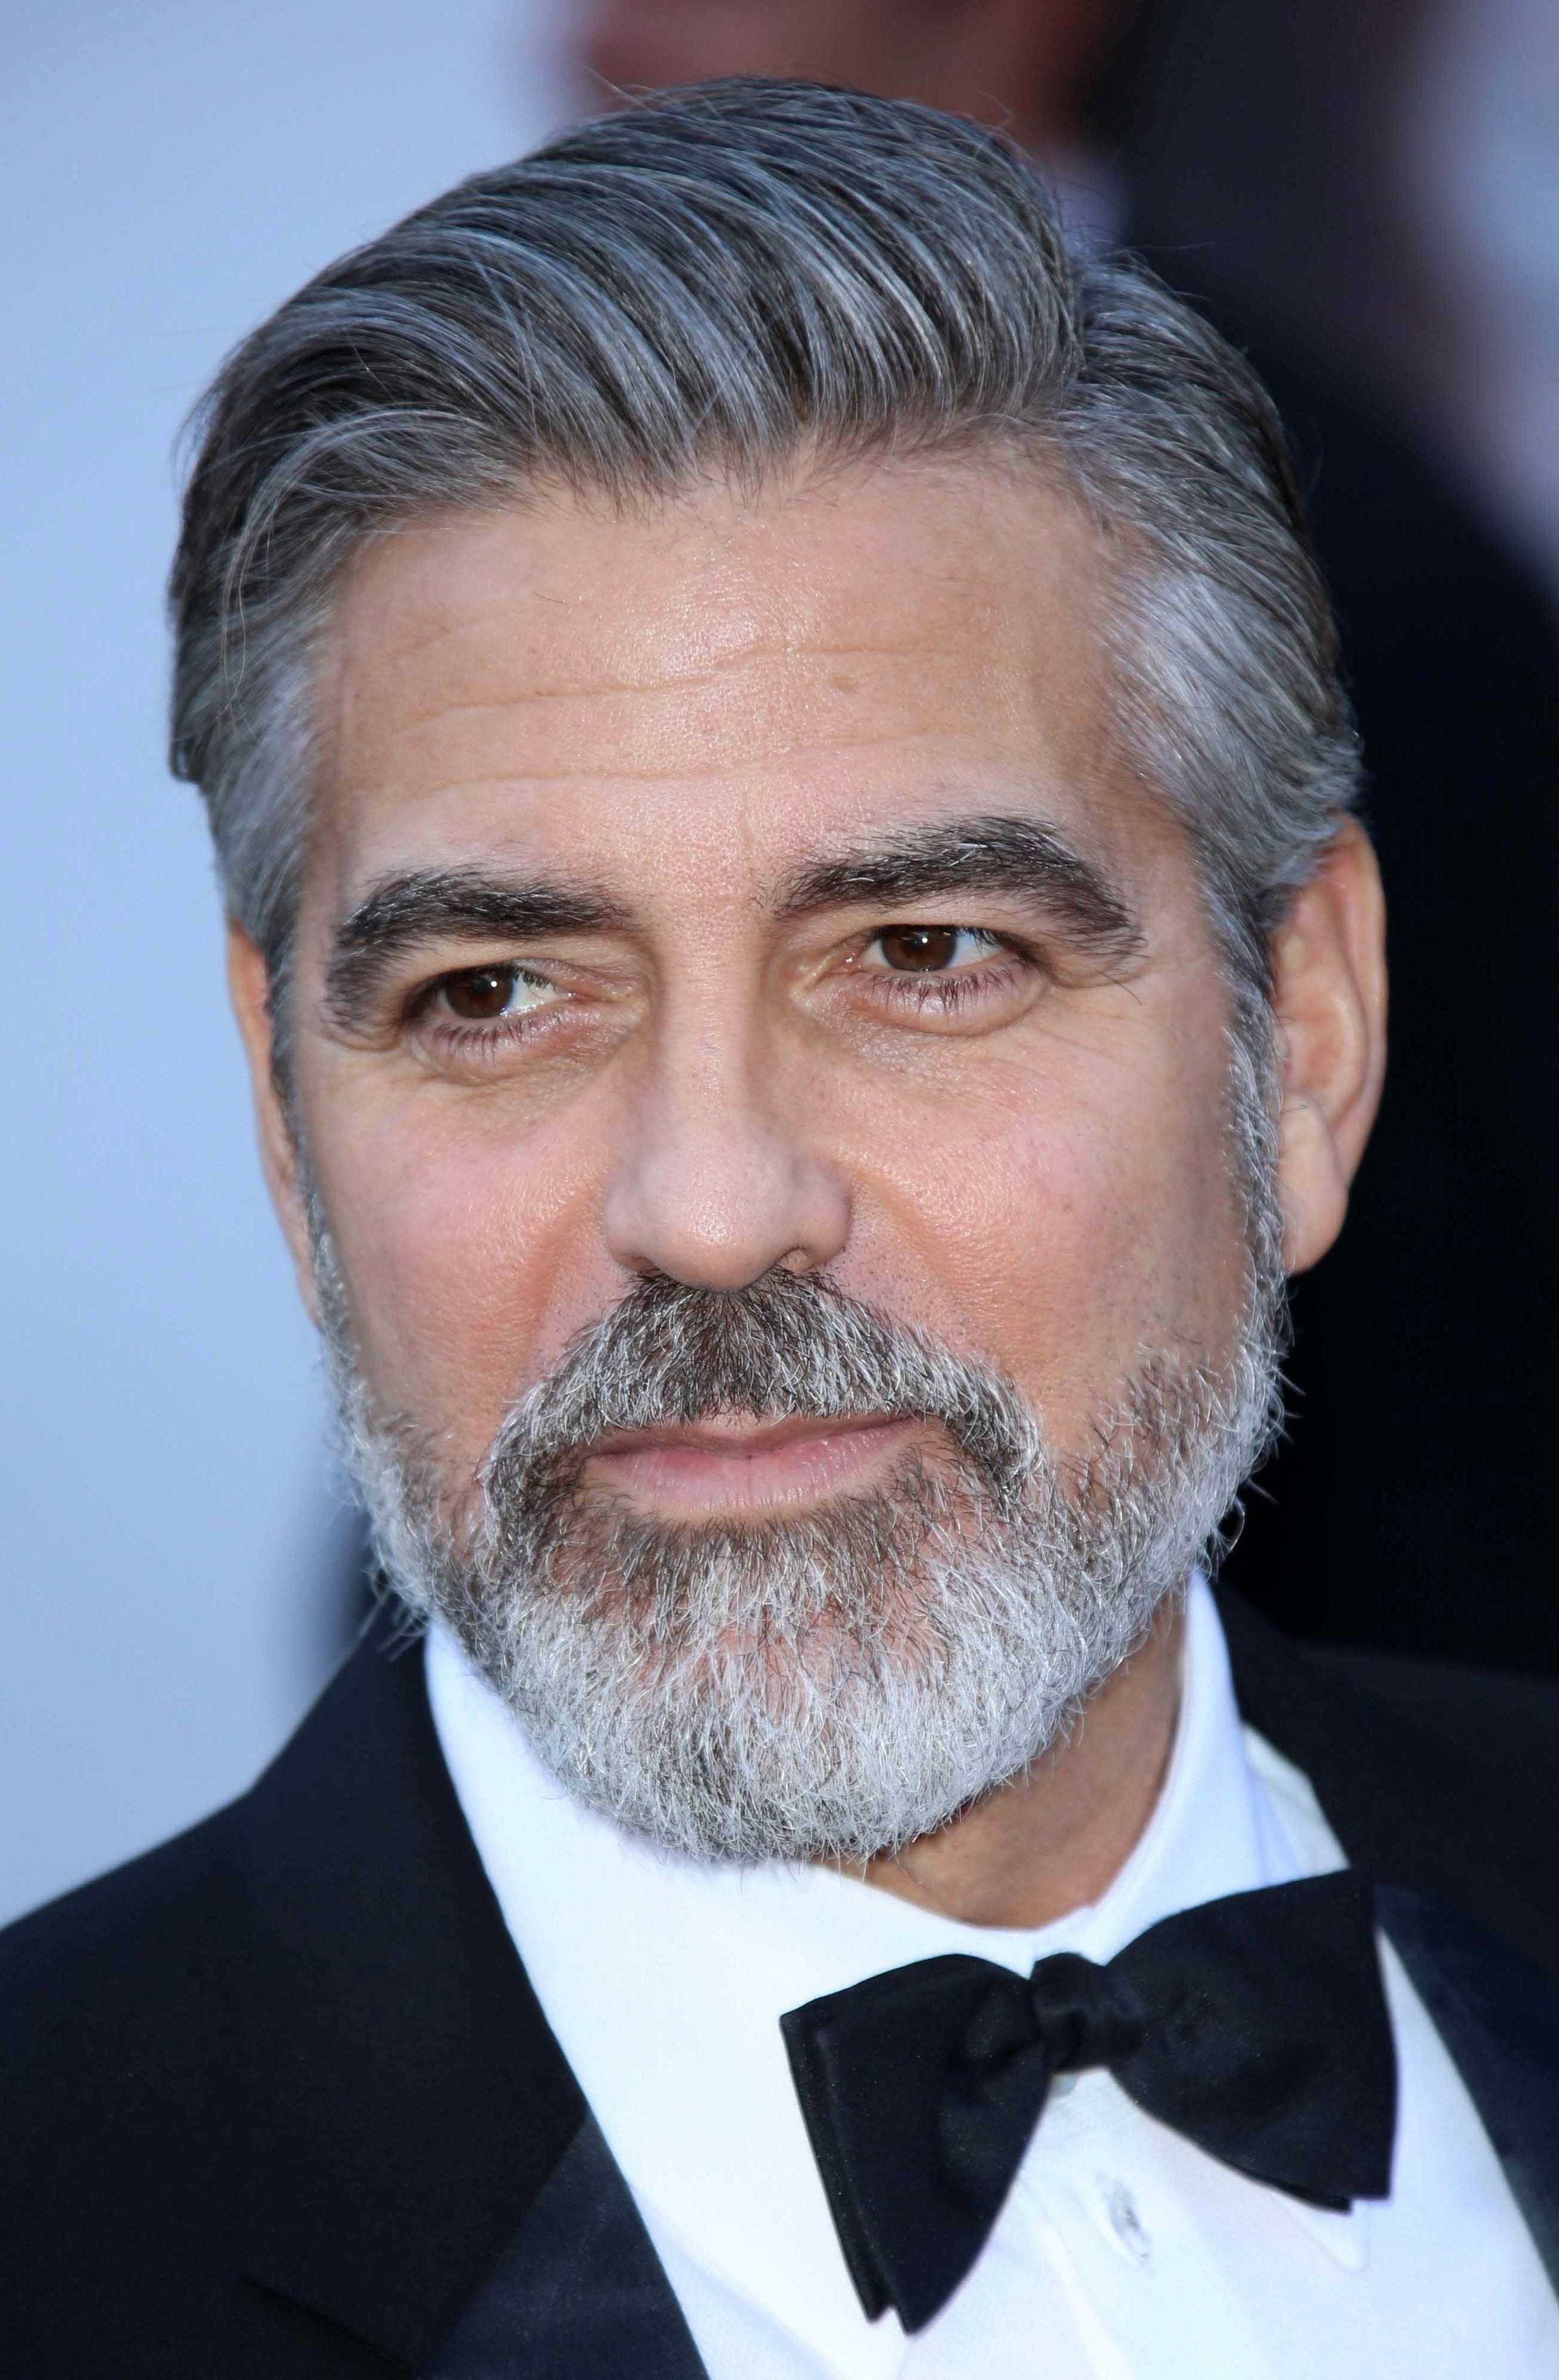 George Clooney's Slicked Back Side Part